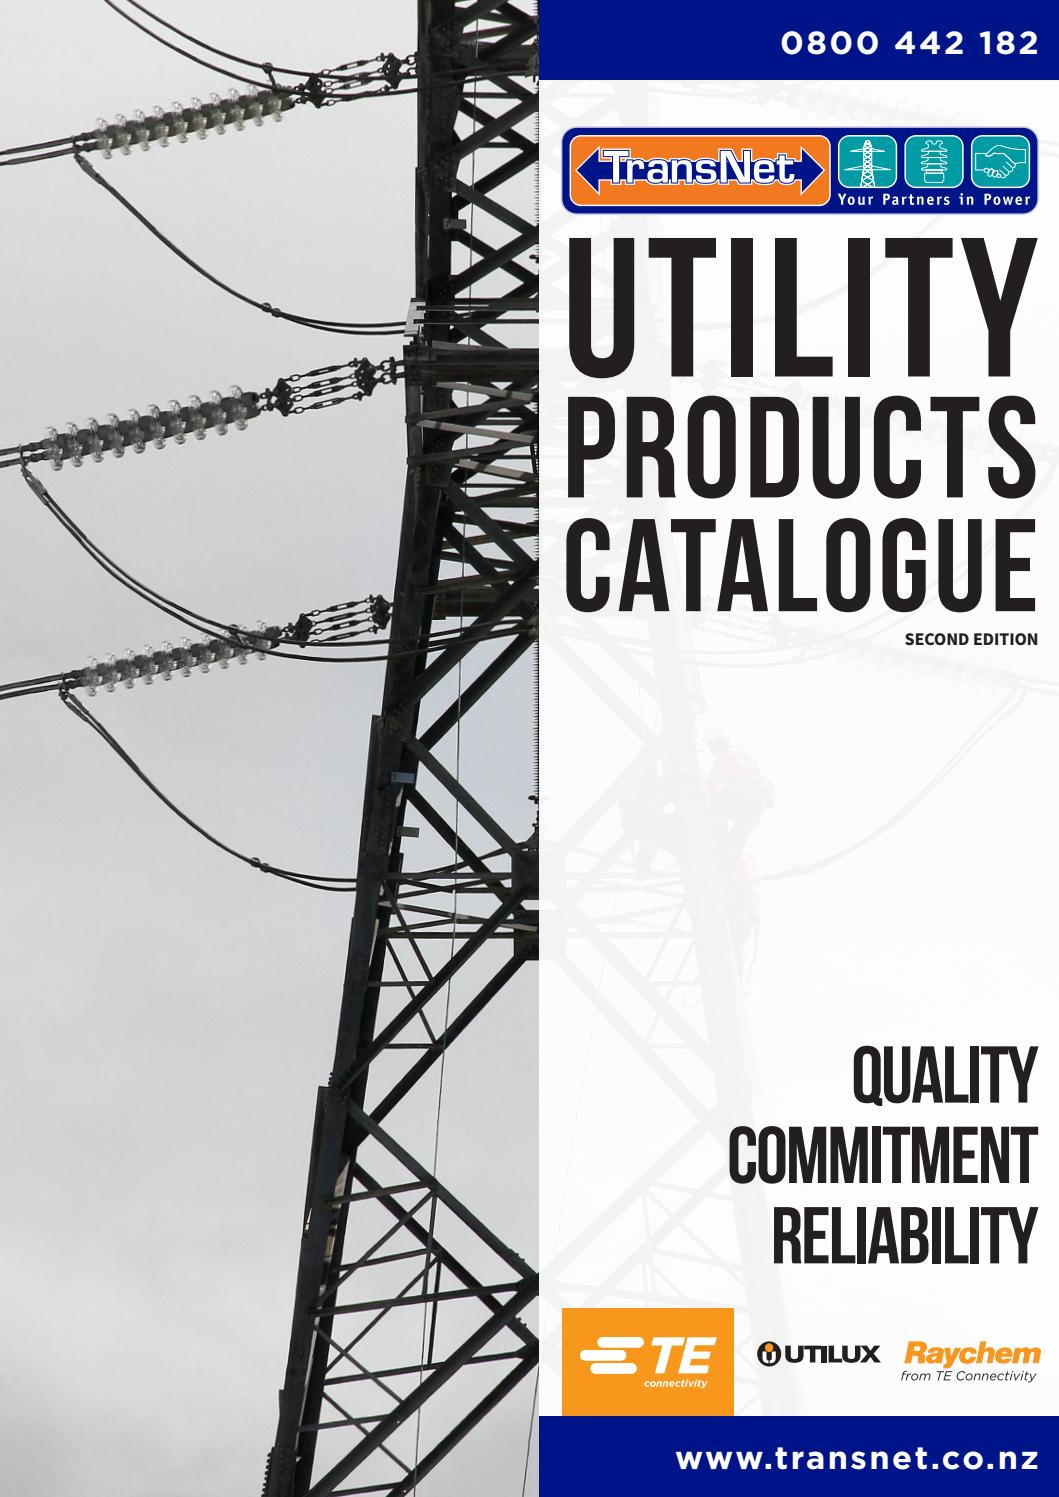 hight resolution of transnet nz ltd utility products catalogue 2018 second edition